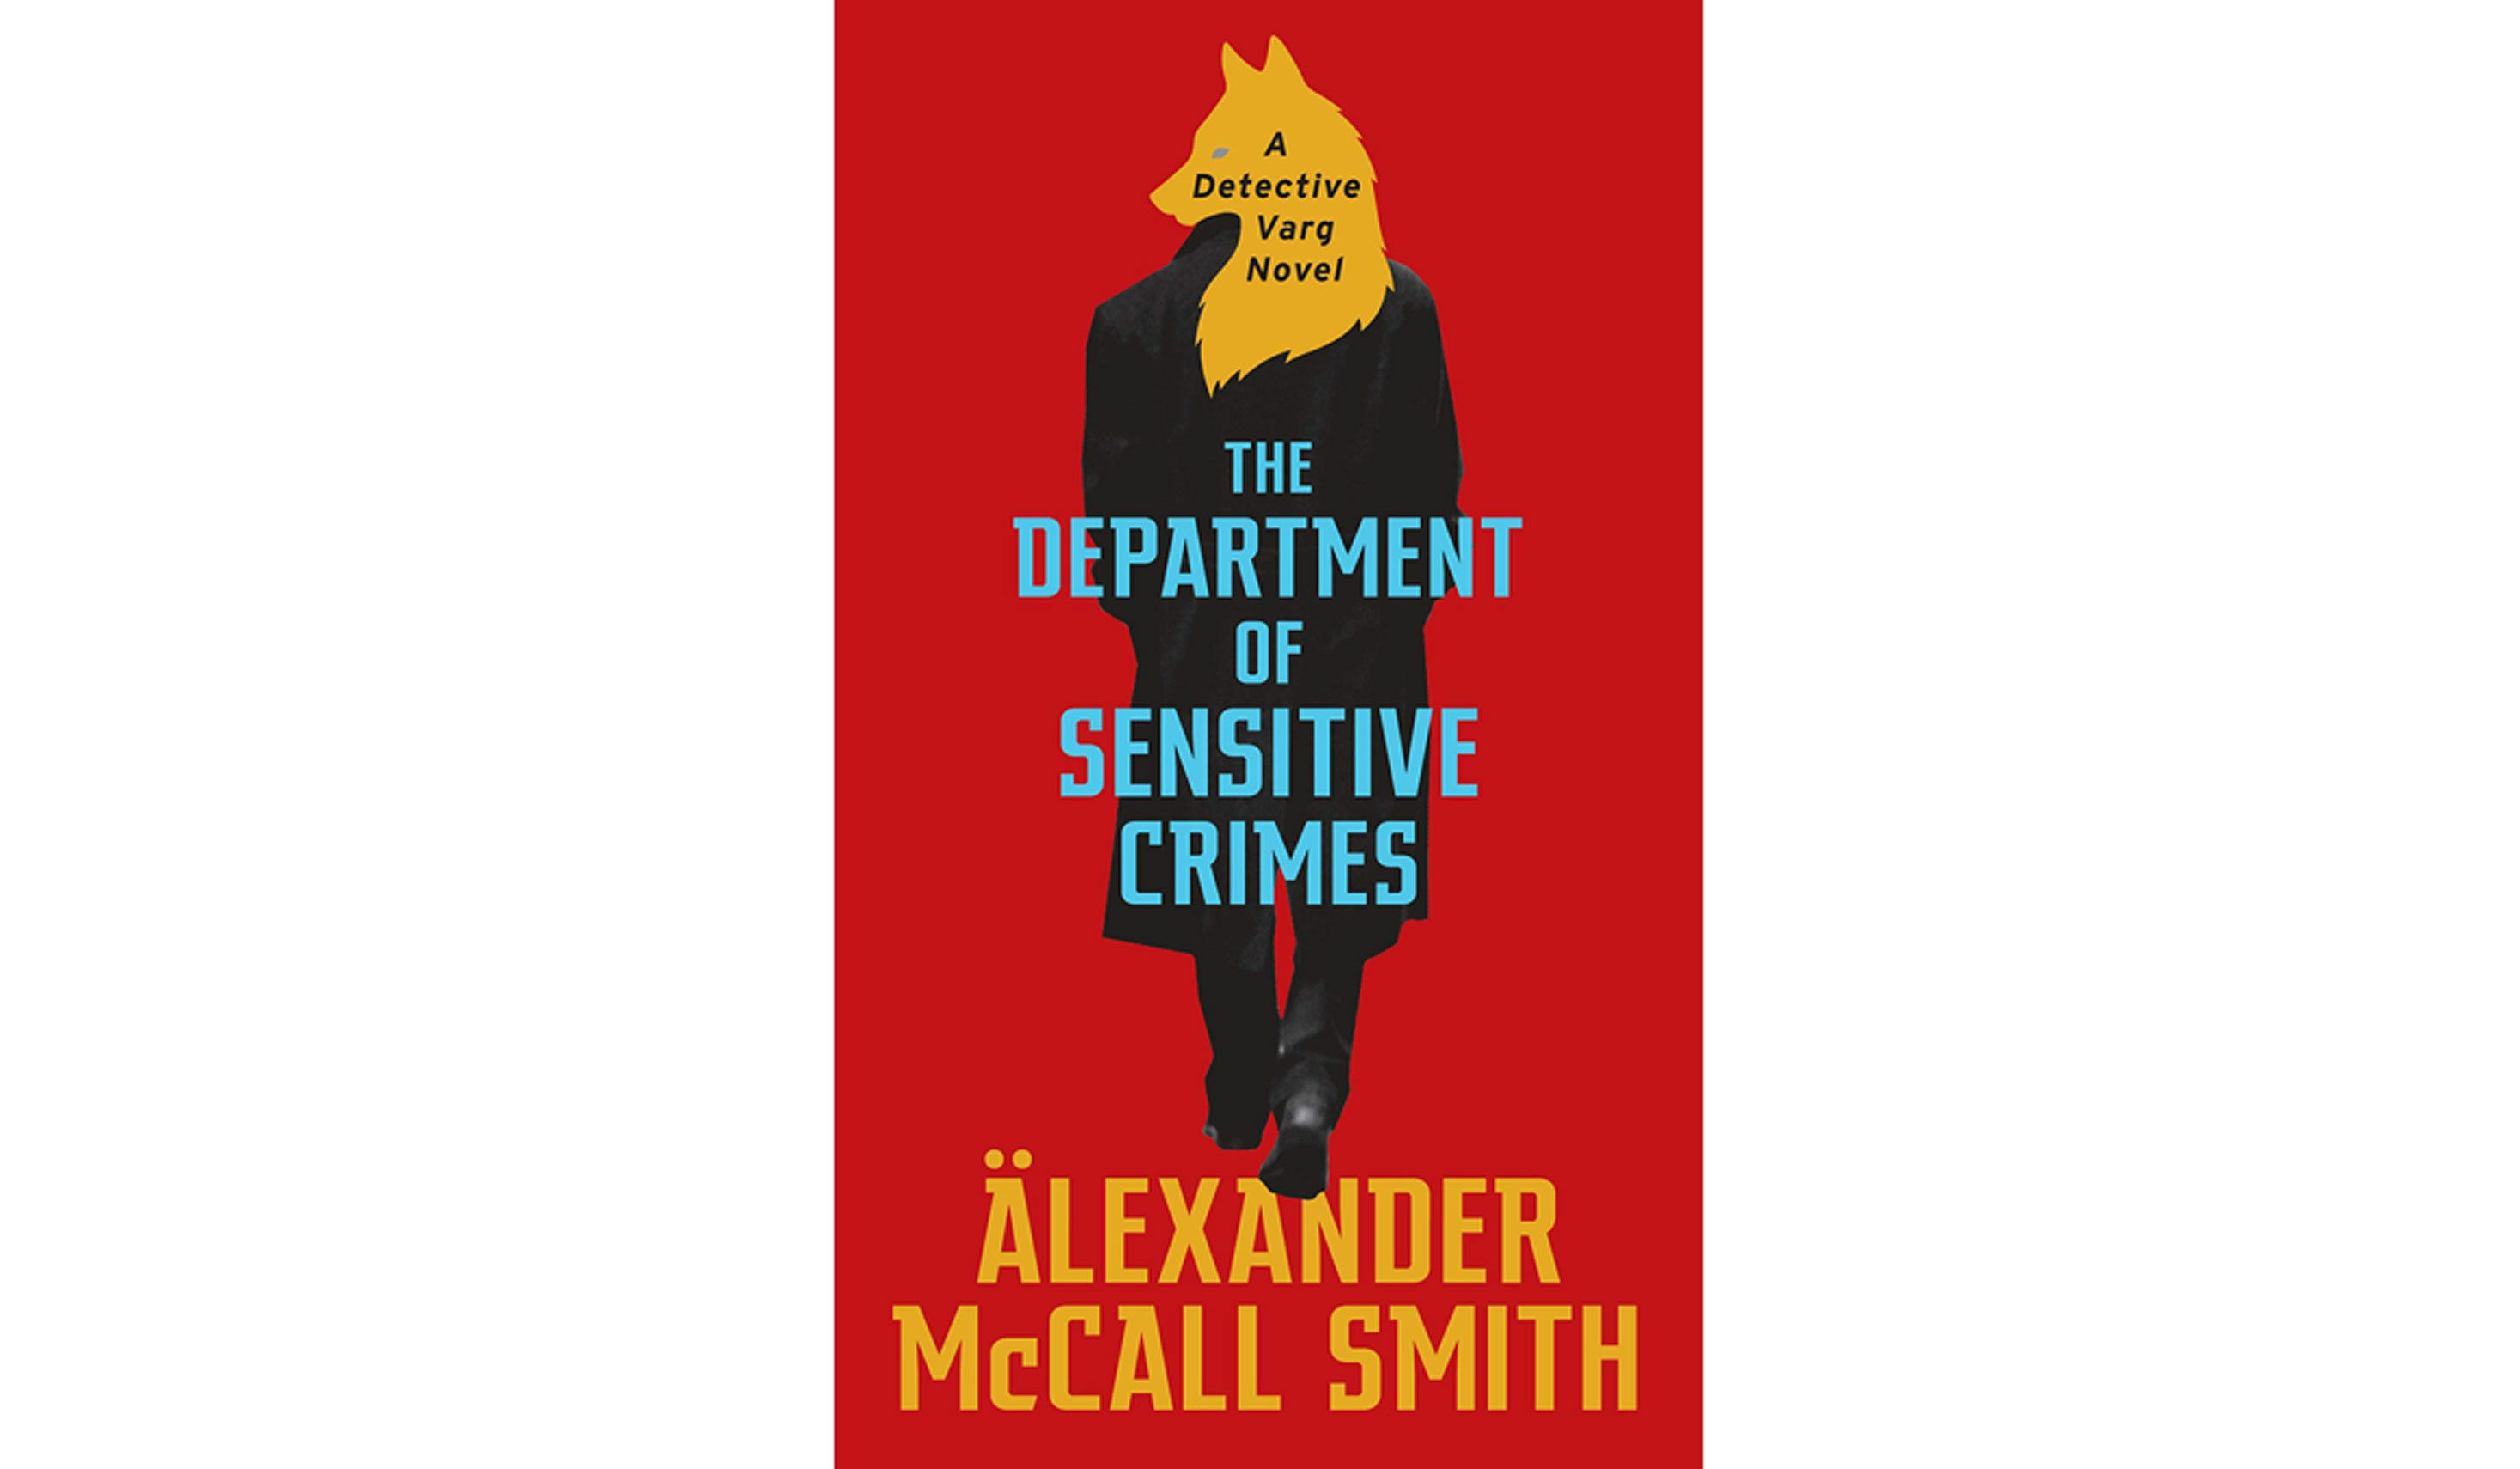 BOOK REVIEW: 'The Department of Sensitive Crimes' by Alexander McCall Smith